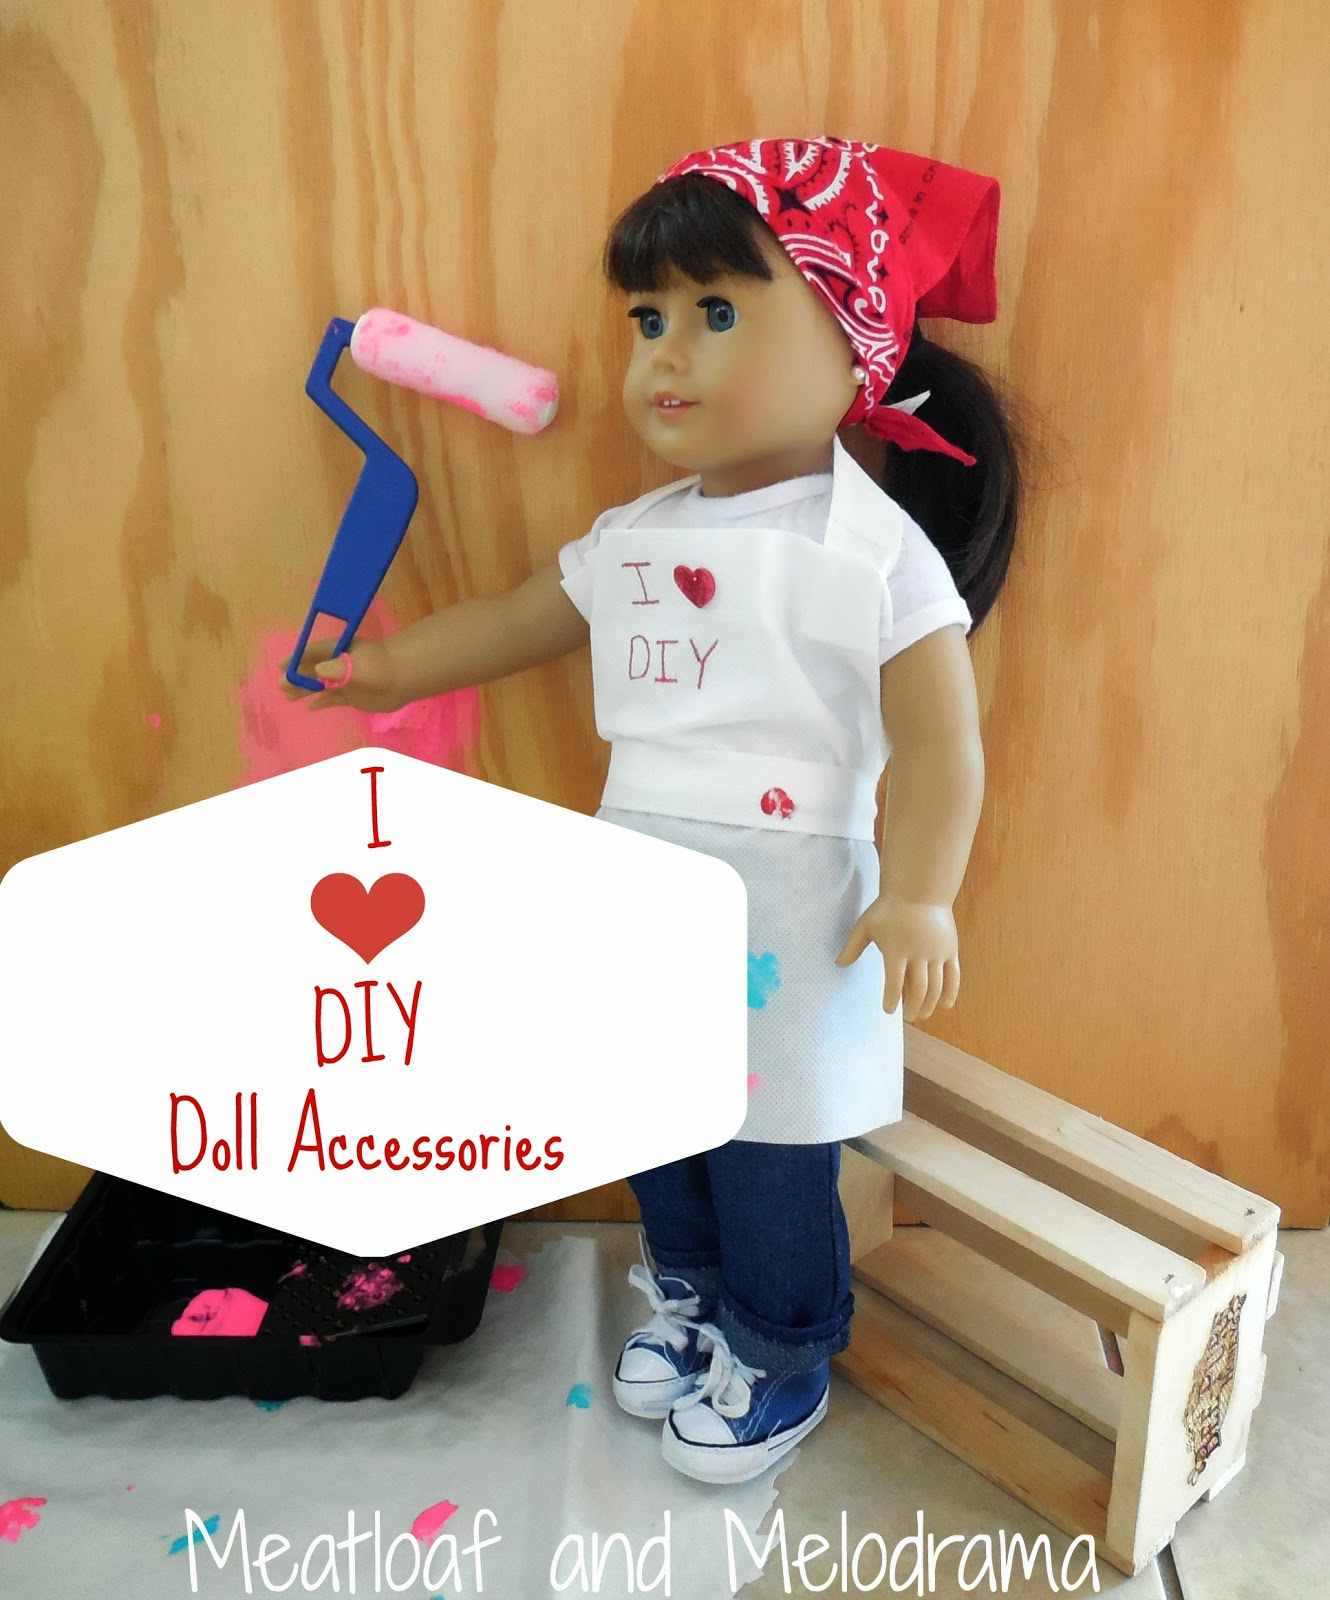 American Girl Diy Crafts Homemade